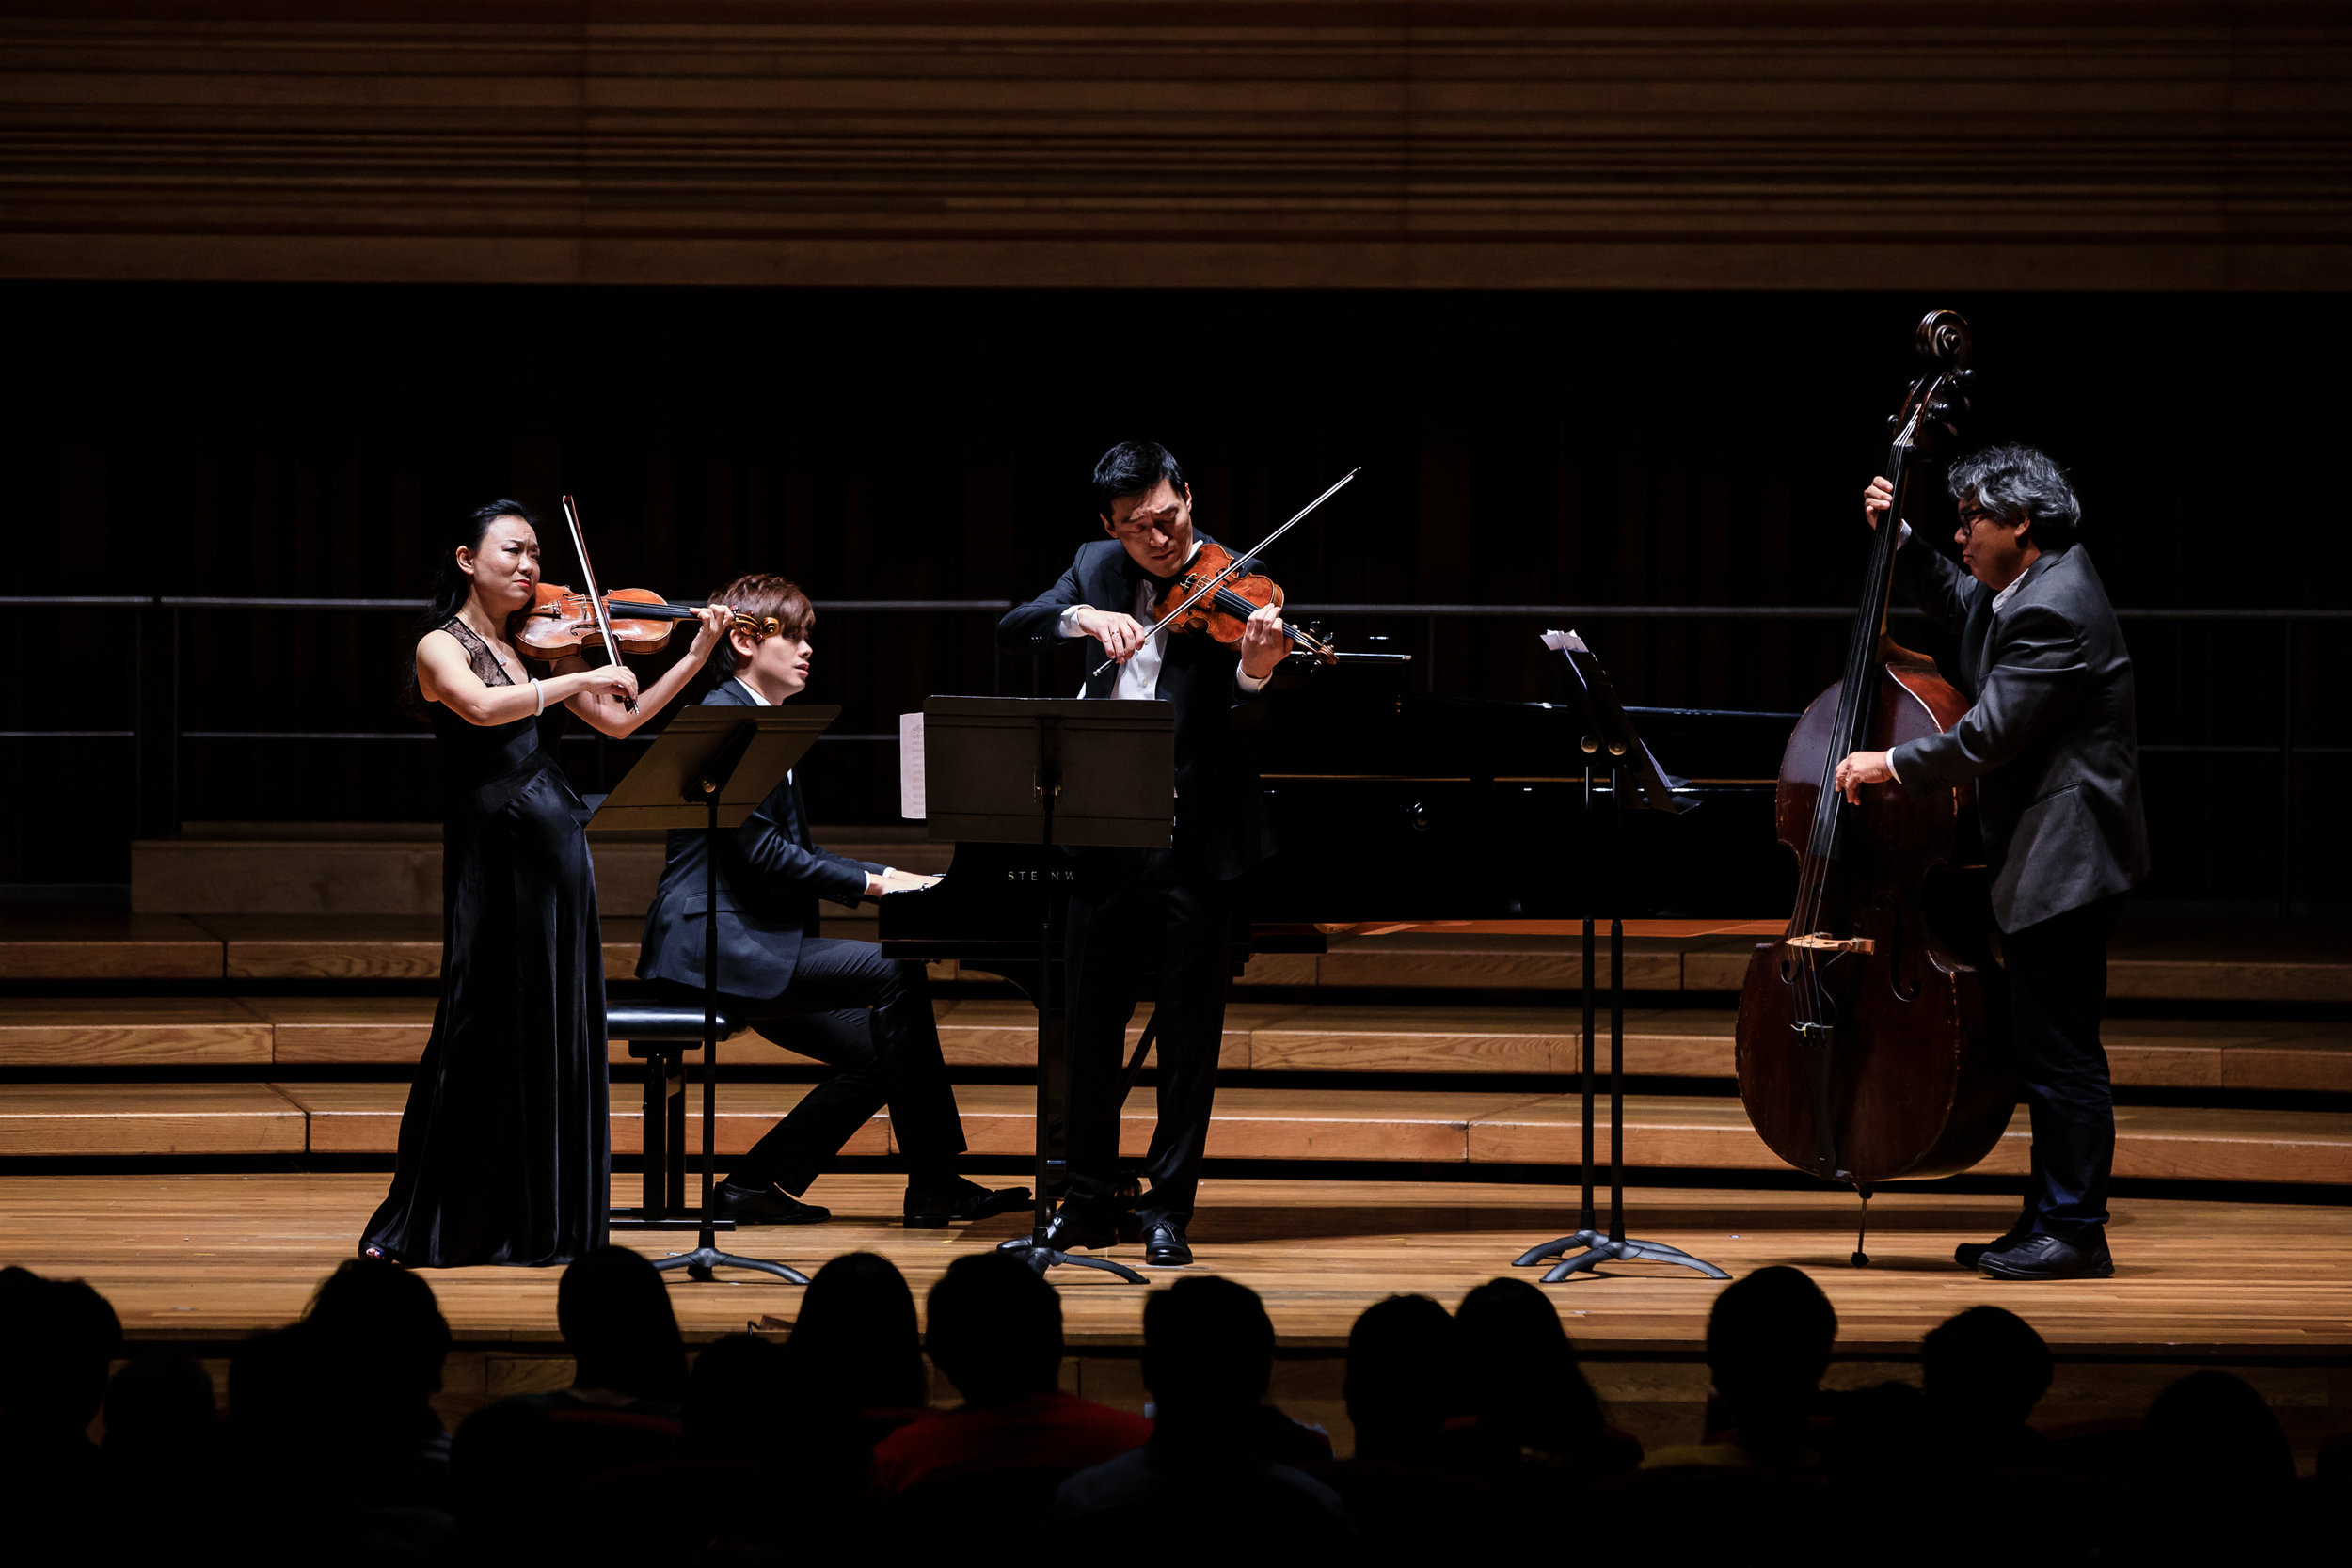 Head of Strings Prof Qian Zhou (left) in a quartet with (from right) Assoc Prof Tony Makarome, Du Rui ('08, Violin) and Gabriel Hoe (Year 4, Piano).